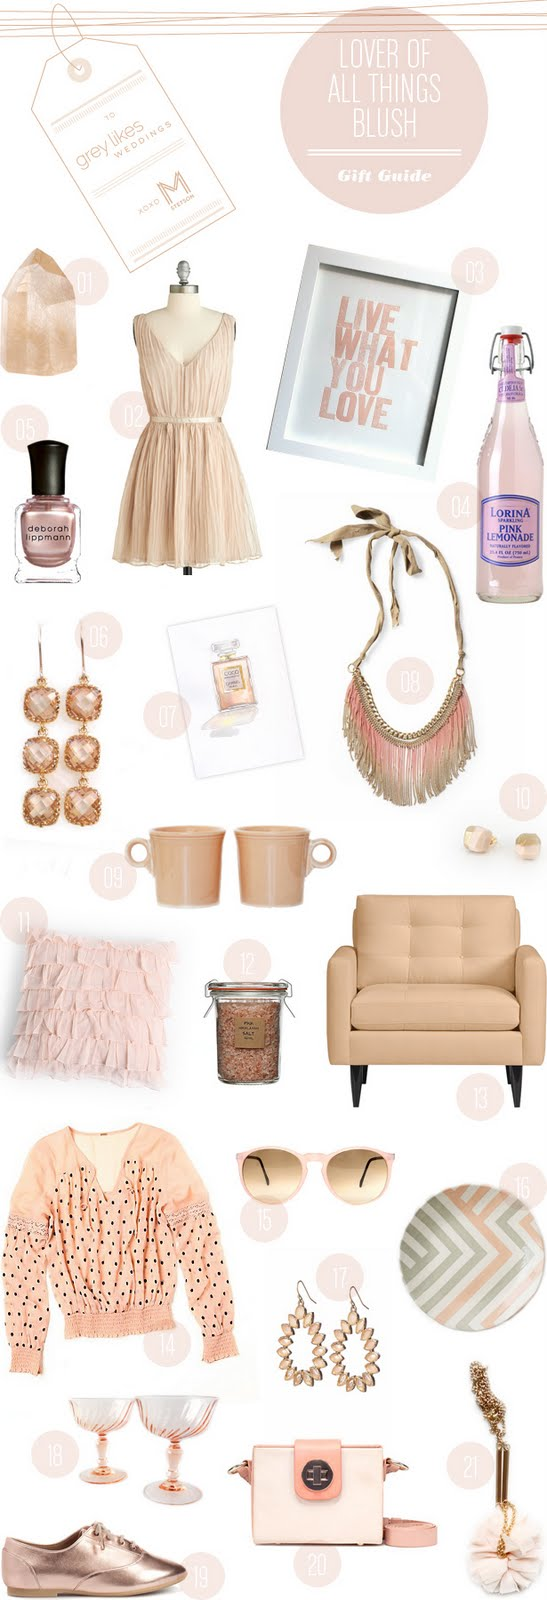 Wedding Blog Blush: Gift Guide from MStetson Design